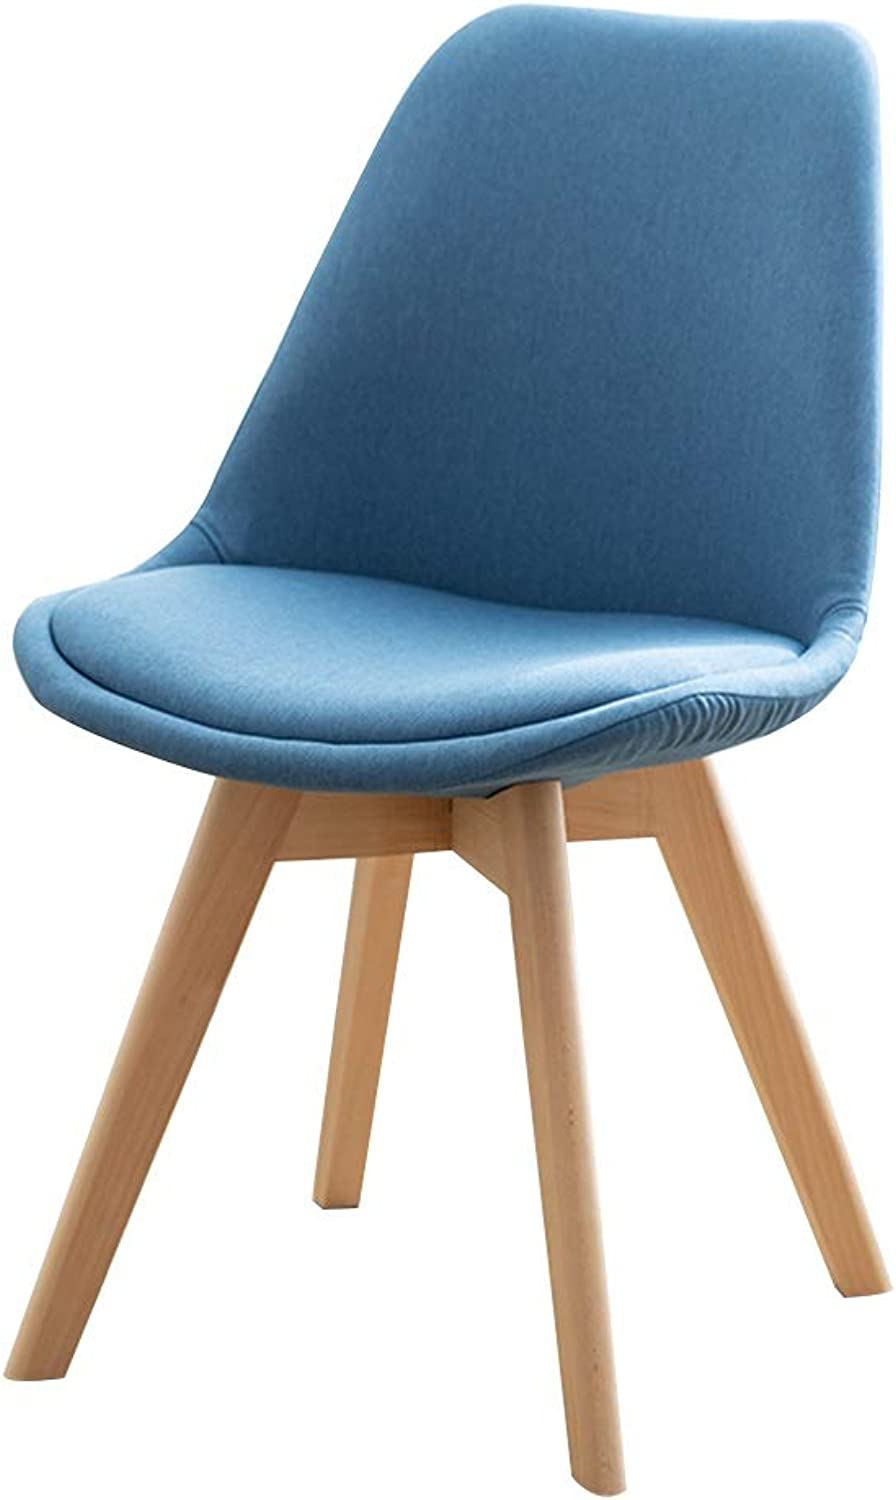 Chair Dining Chair, Solid Wood Tulip Conference Chair Modern Simplicity Office Chair Household Armchair Maximum Load  330 Lbs (color   Light bluee)